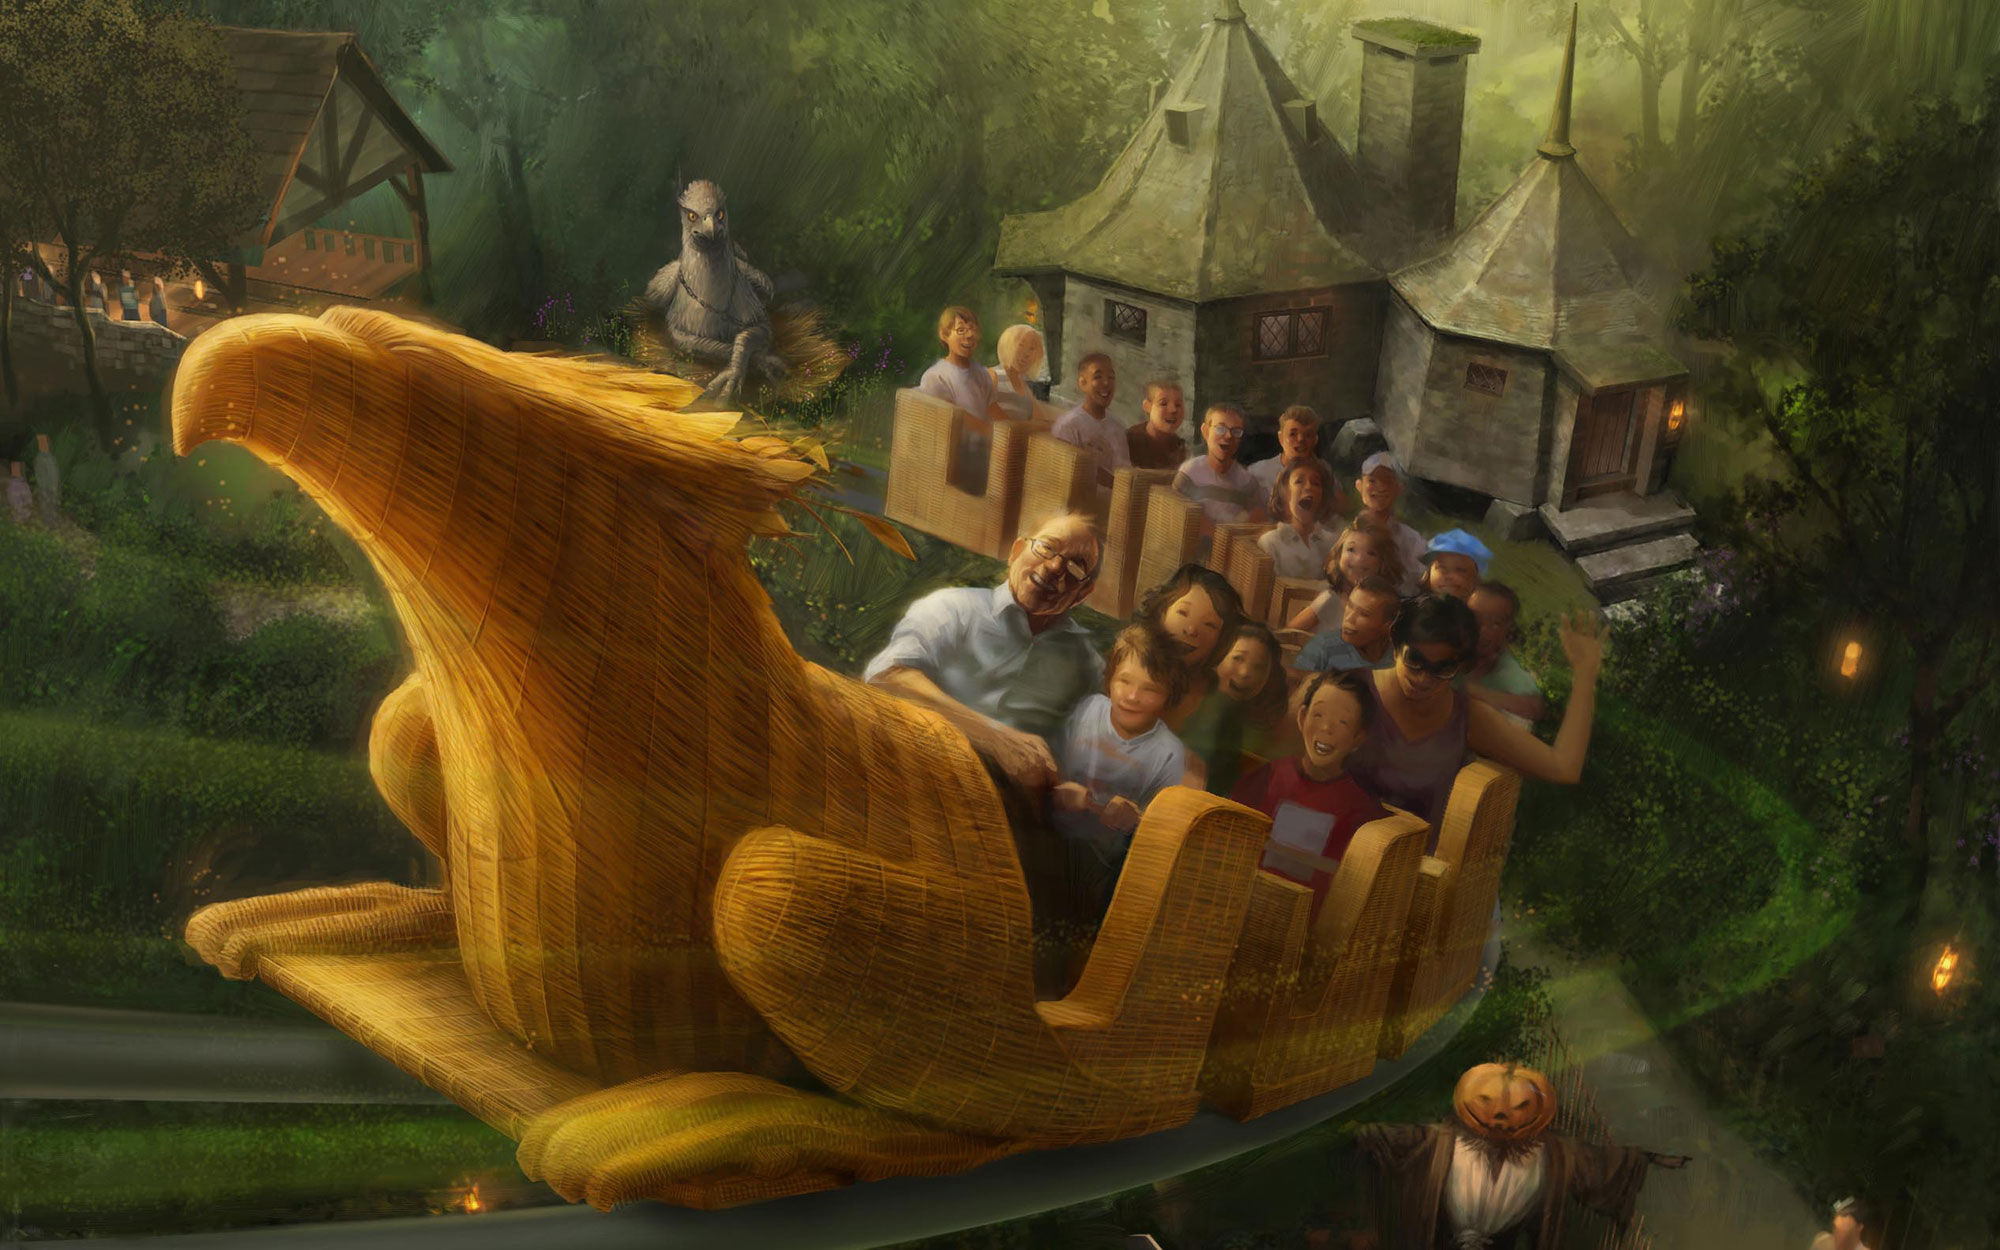 """""""The Wizarding World of Harry Potter"""" at Universal Studios Hollywood - Flight of the Hippogriff concept rendering"""